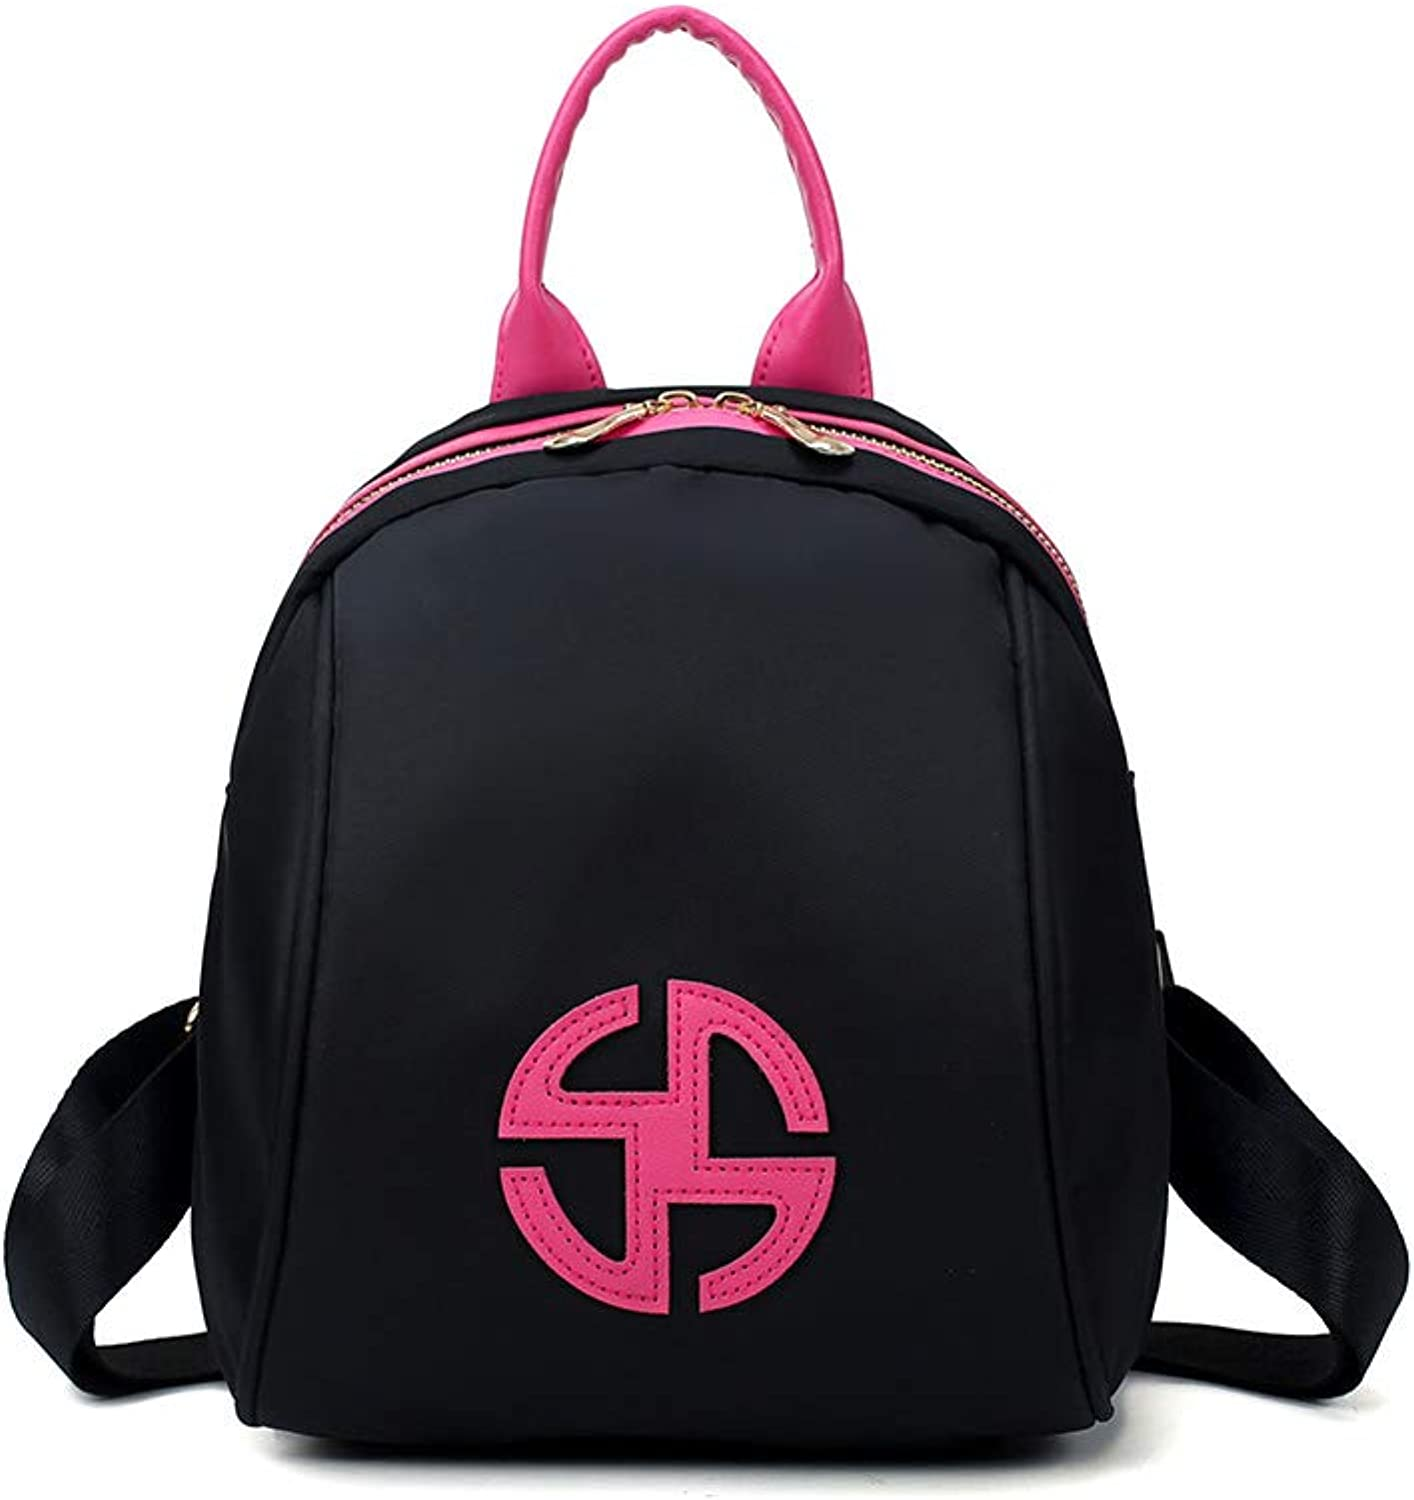 ZHICHUANG The Girl's Versatile Backpack is Perfect for Everyday Travel, Outdoor, Travel, School, Work, Fashion and Leisure. Black blueee. for Women & Men